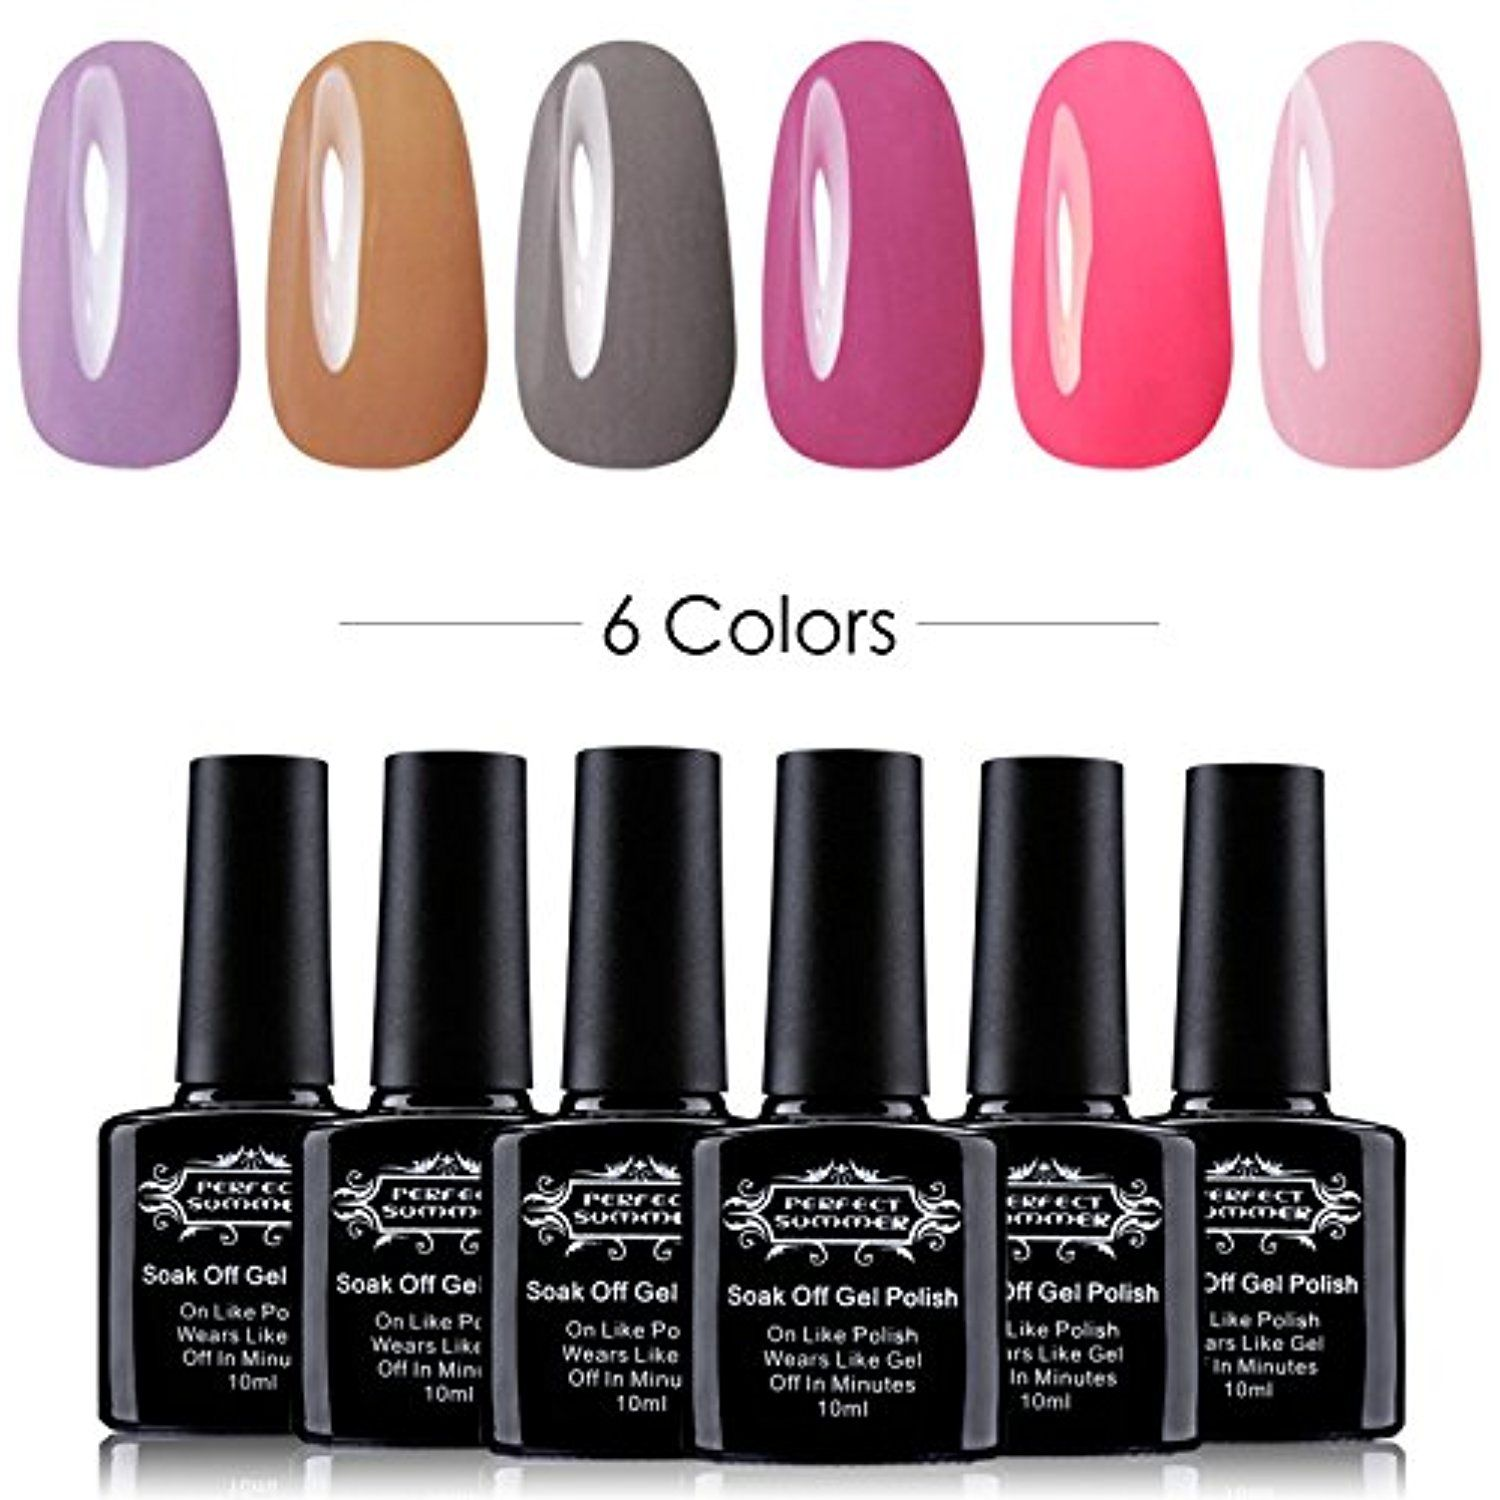 UV Led Gel Nail Polish Set Kit - Nail Lacquers Soak Off for French ...